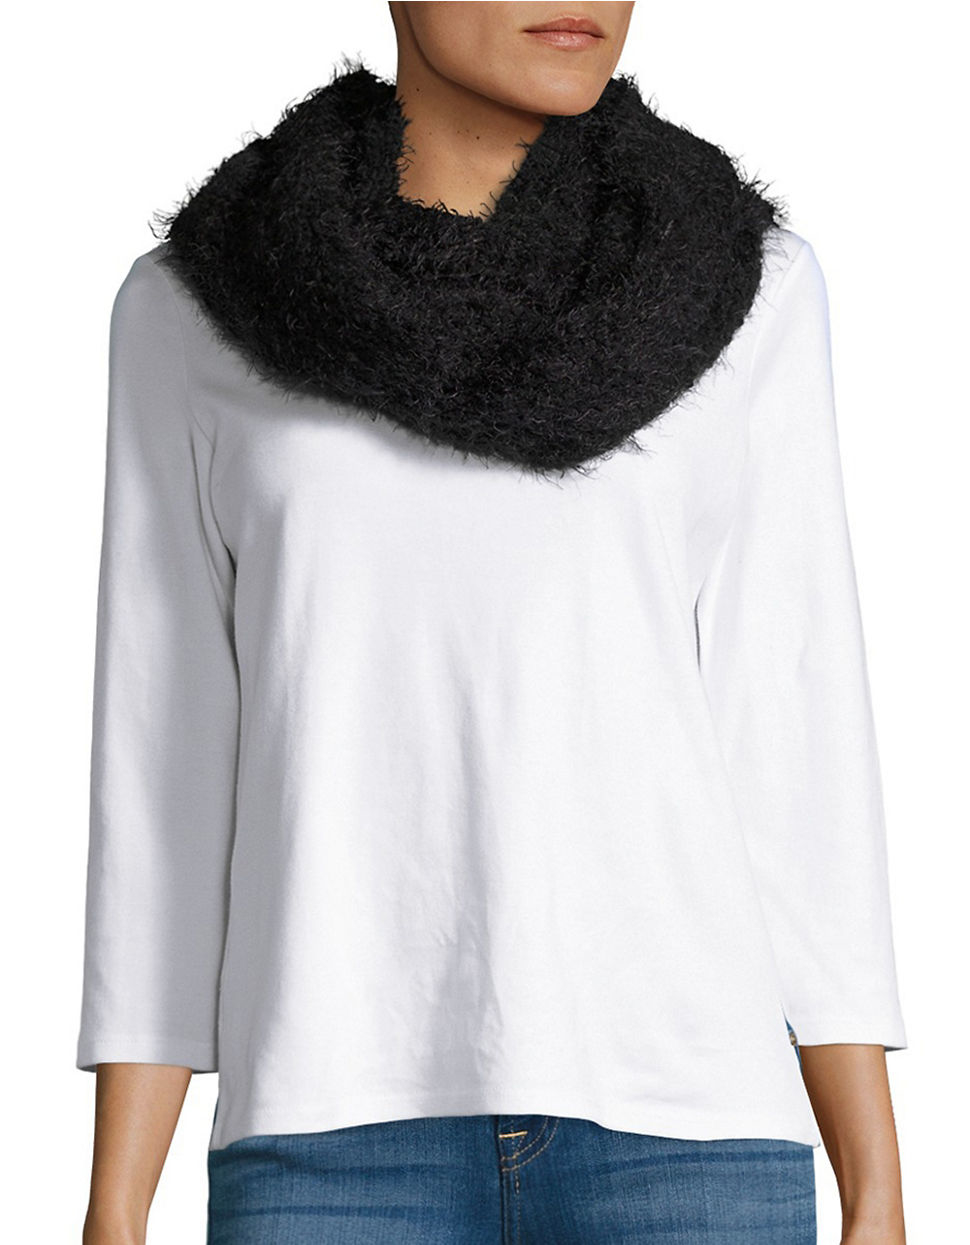 calvin klein fringed boucle infinity scarf in black lyst